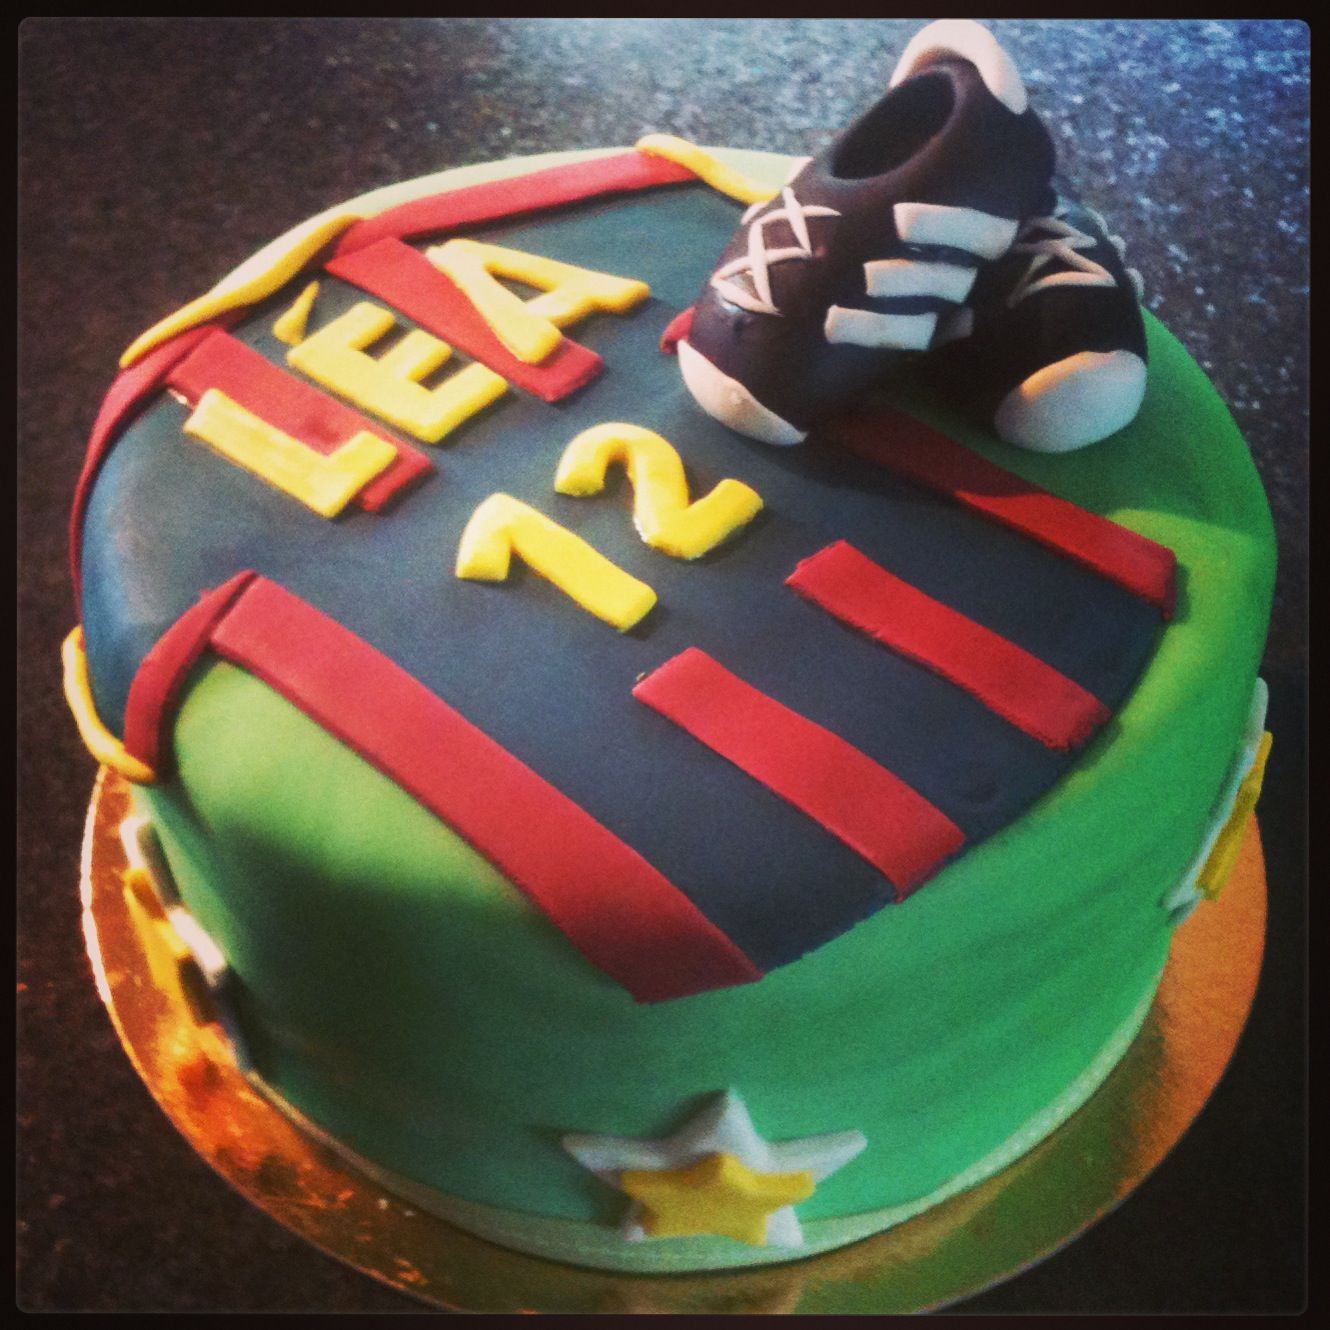 Happy birthday to a soccer fan and player. Soccer cake.